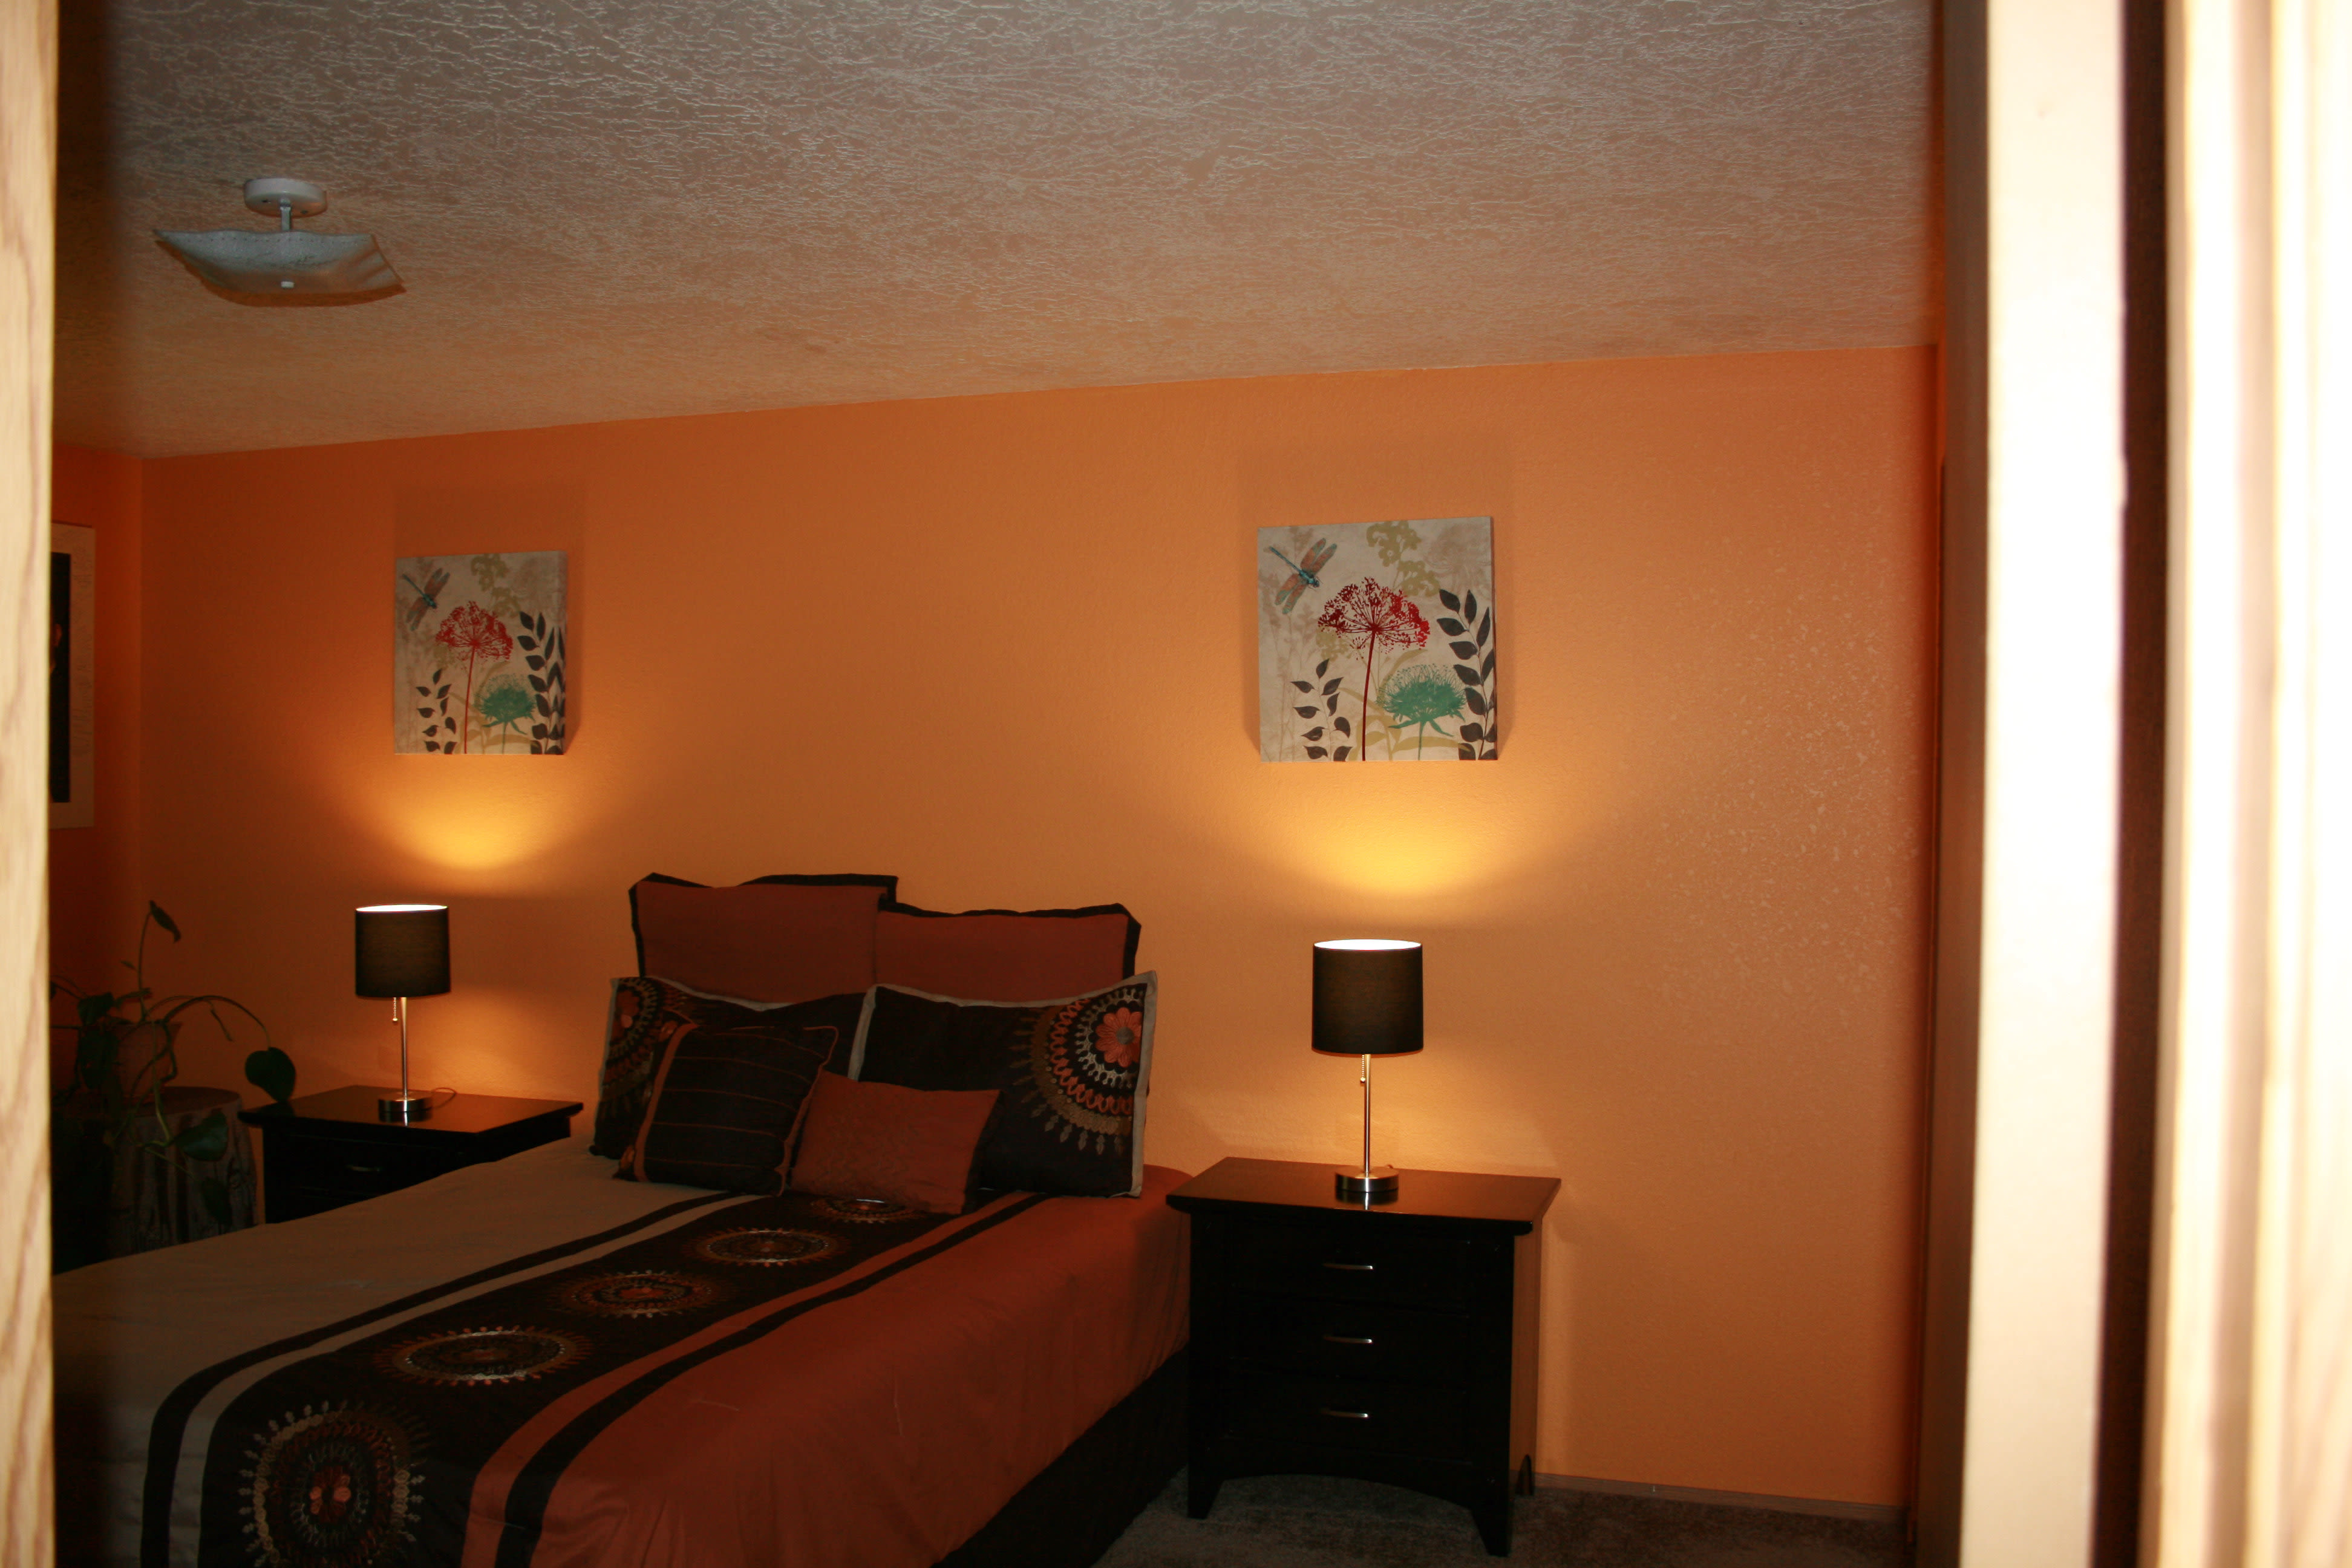 Our apartments in Salem, Oregon offer a bedroom